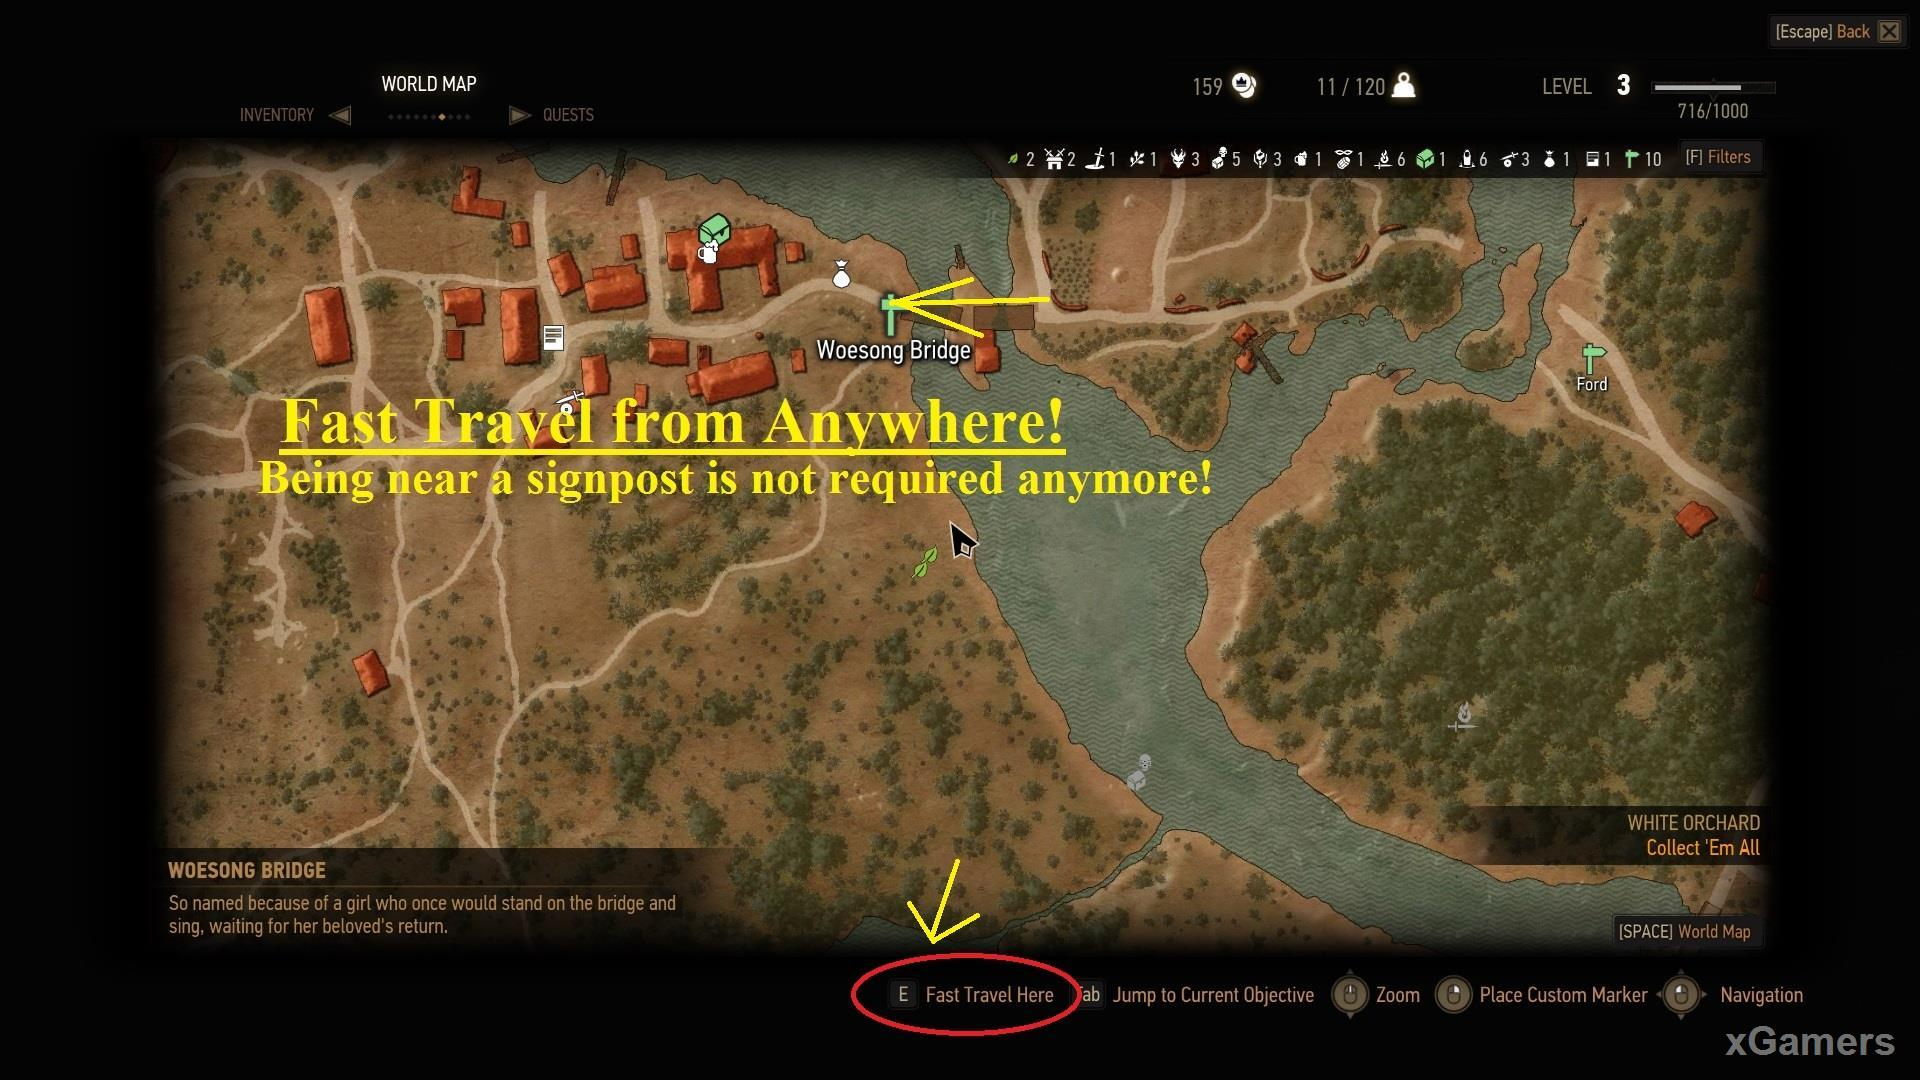 Mod: Fast Travel from Anywhere in The Witcher 3